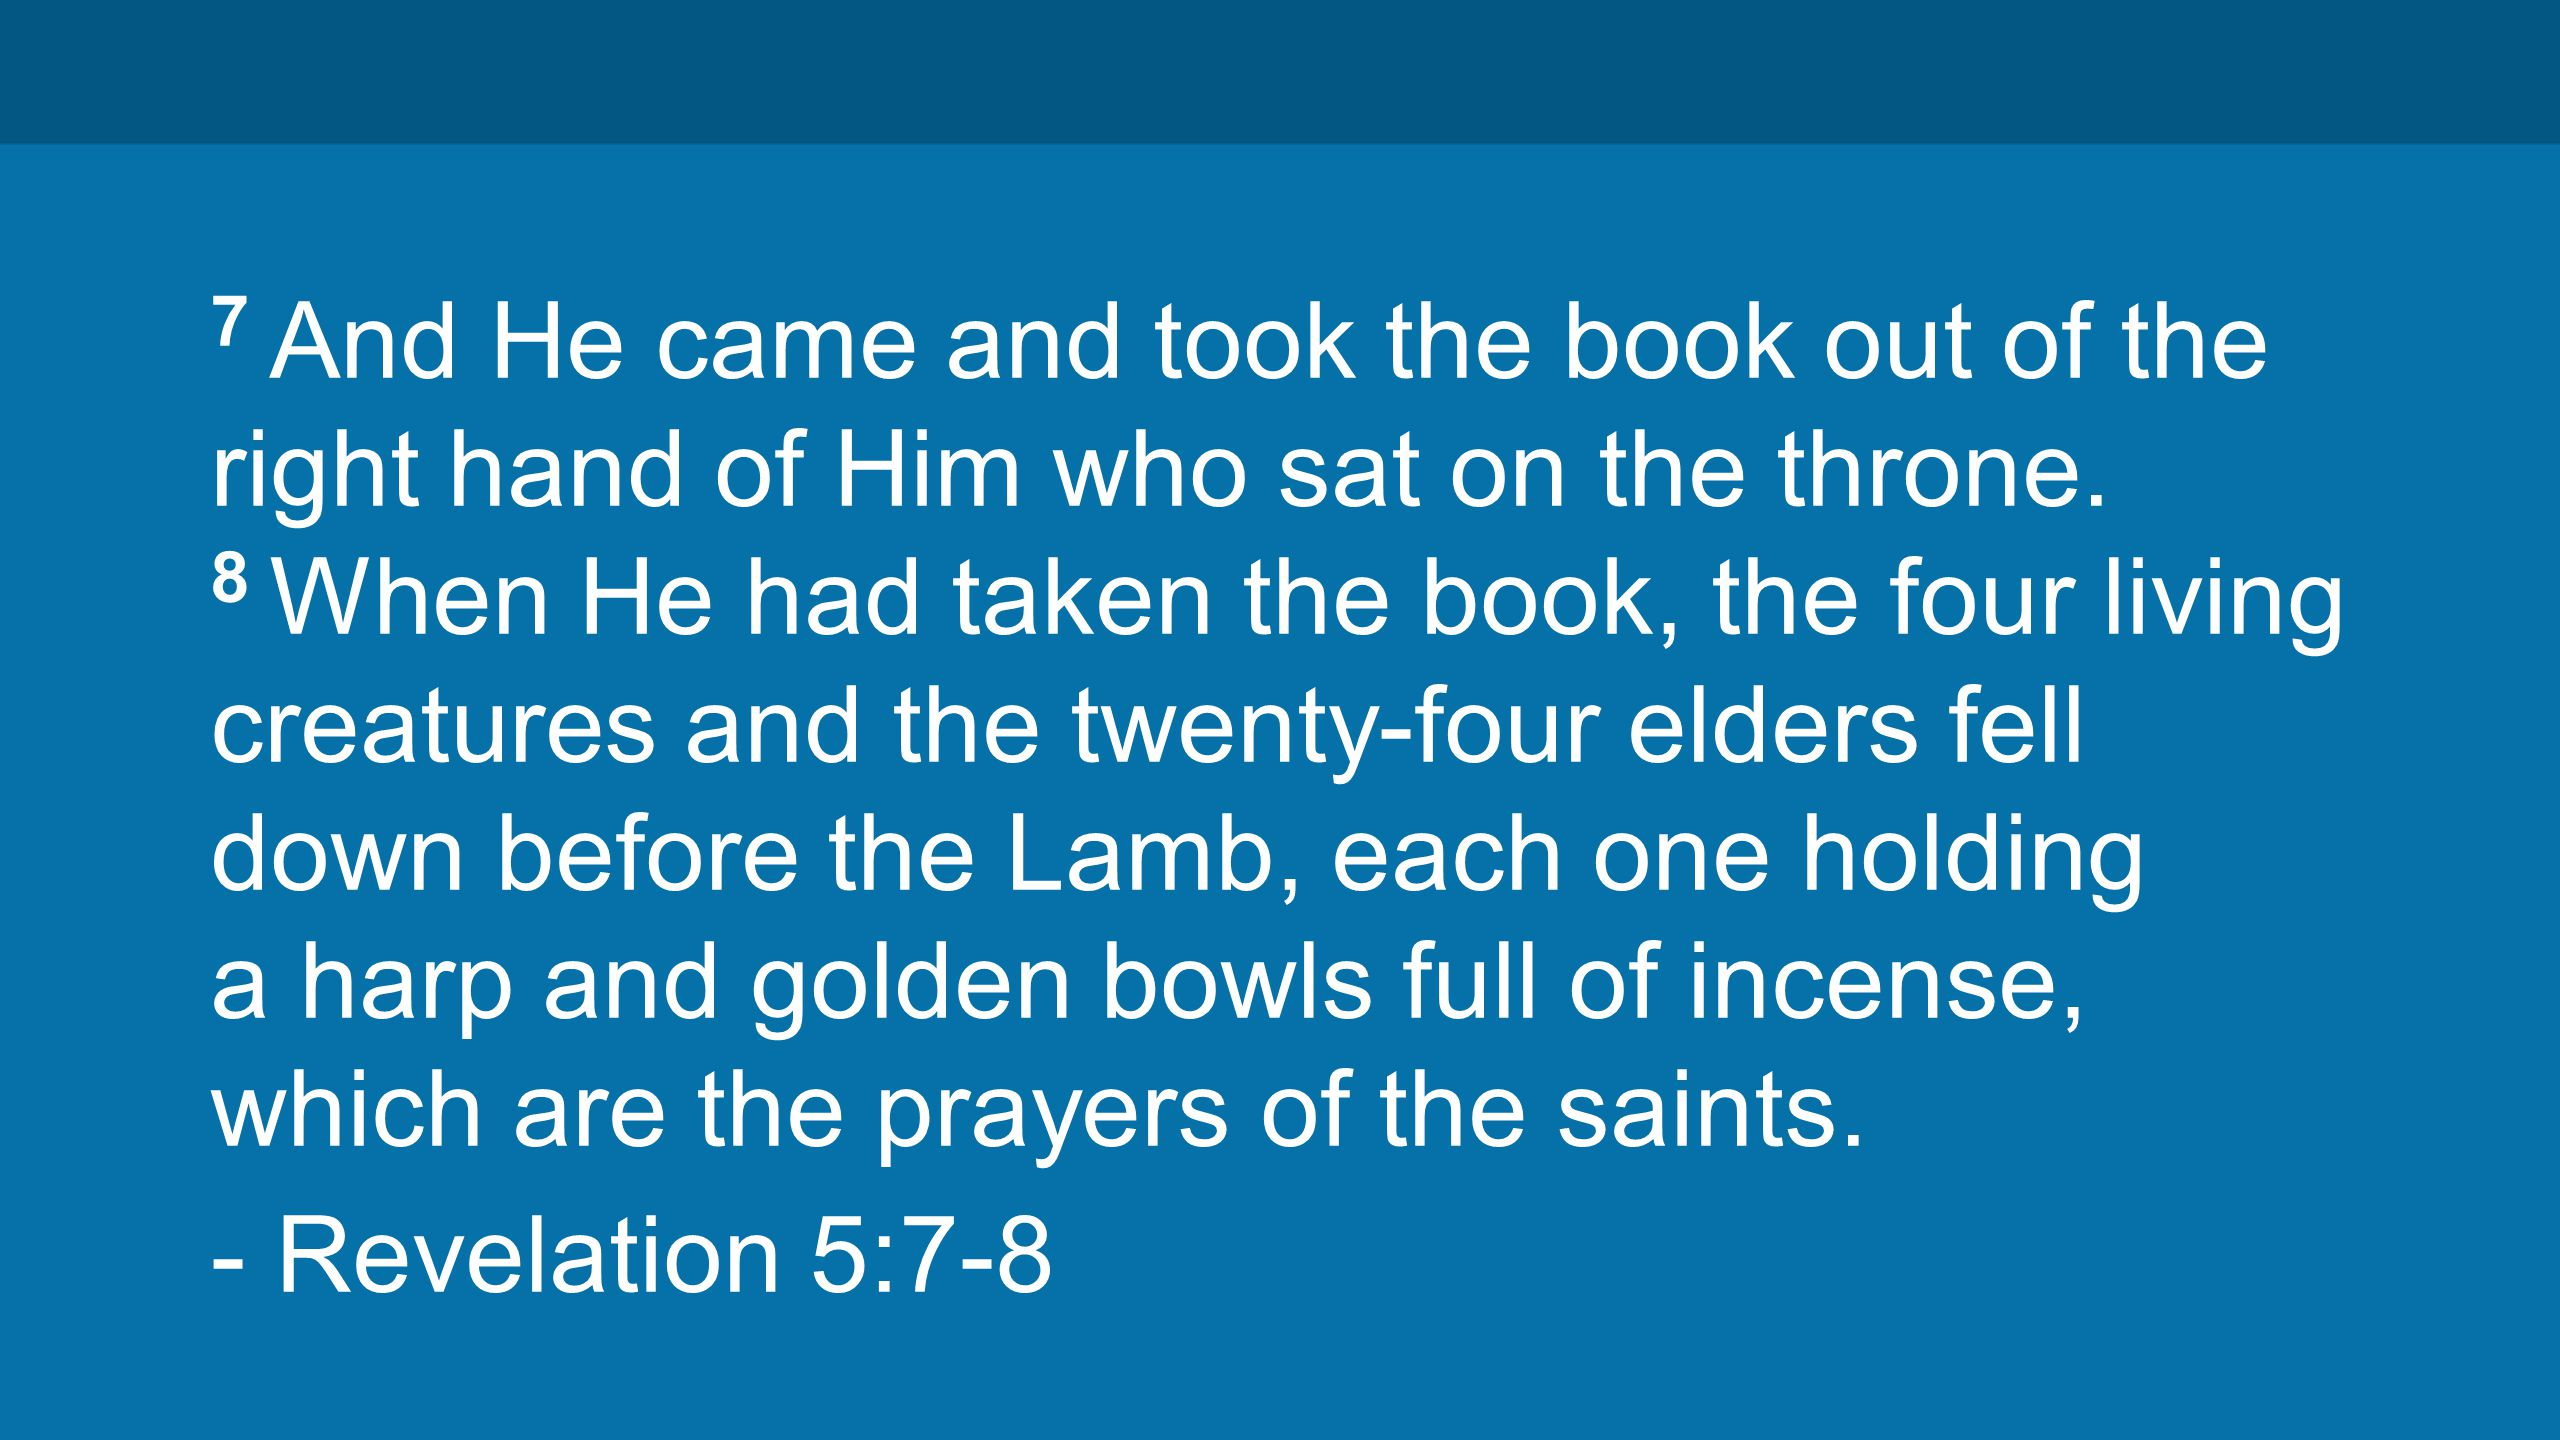 7 And He came and took the book out of the right hand of Him who sat on the throne.